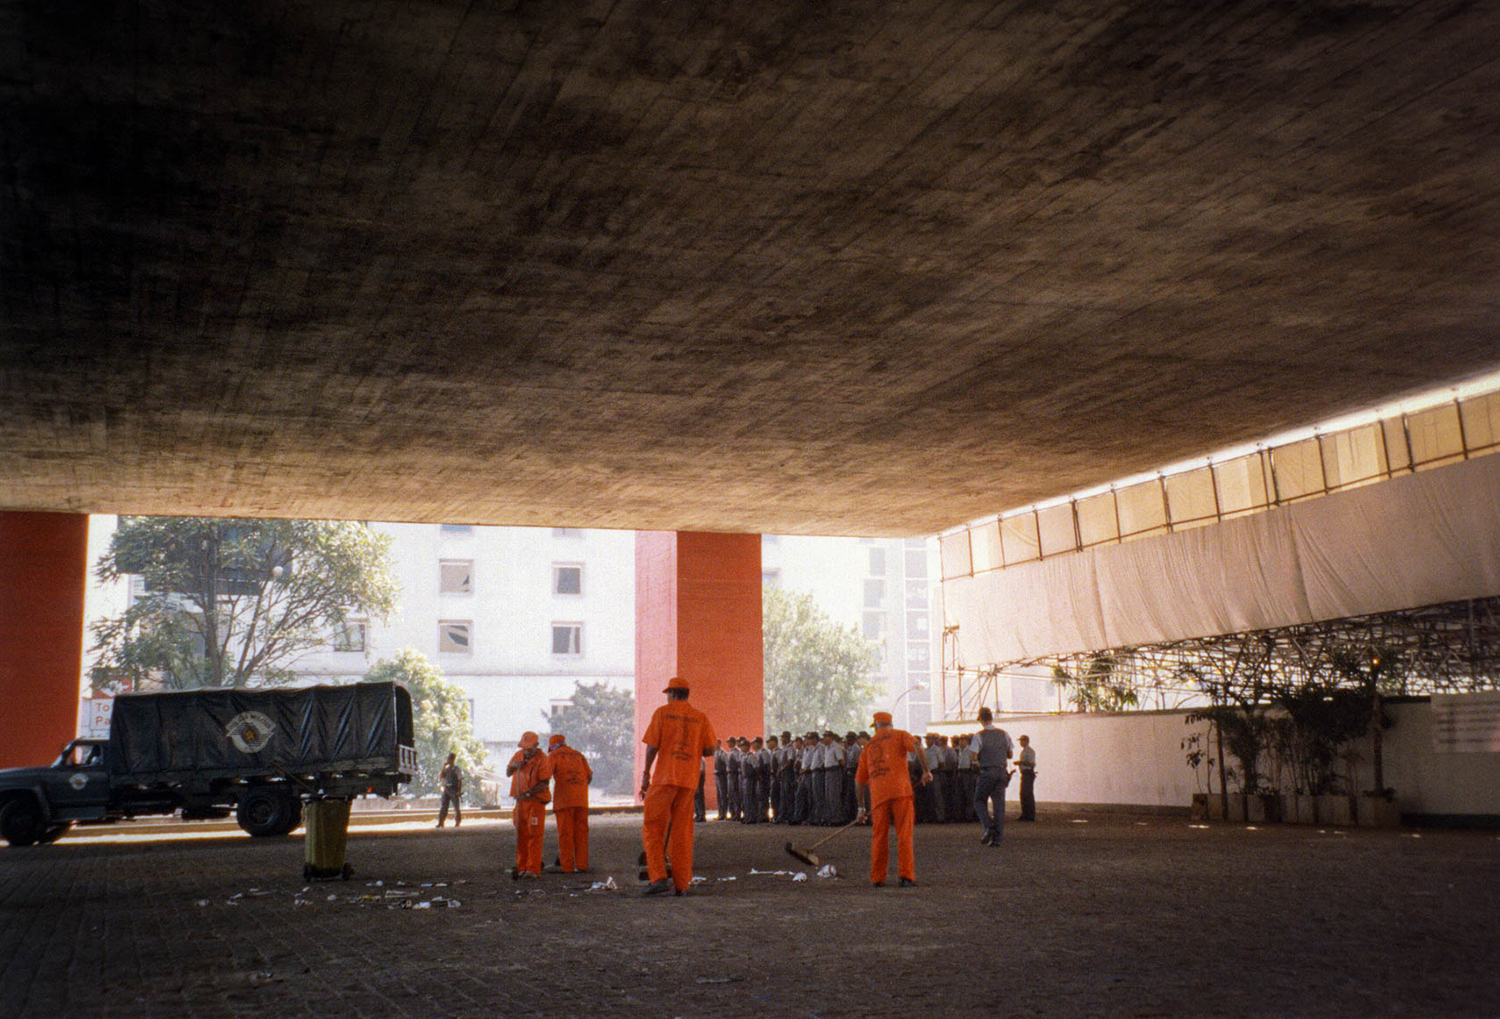 <p>Security forces muster while a team of workers sweep the space beneath the hulking mass of the Museu de Arte de São Paulo.</p>